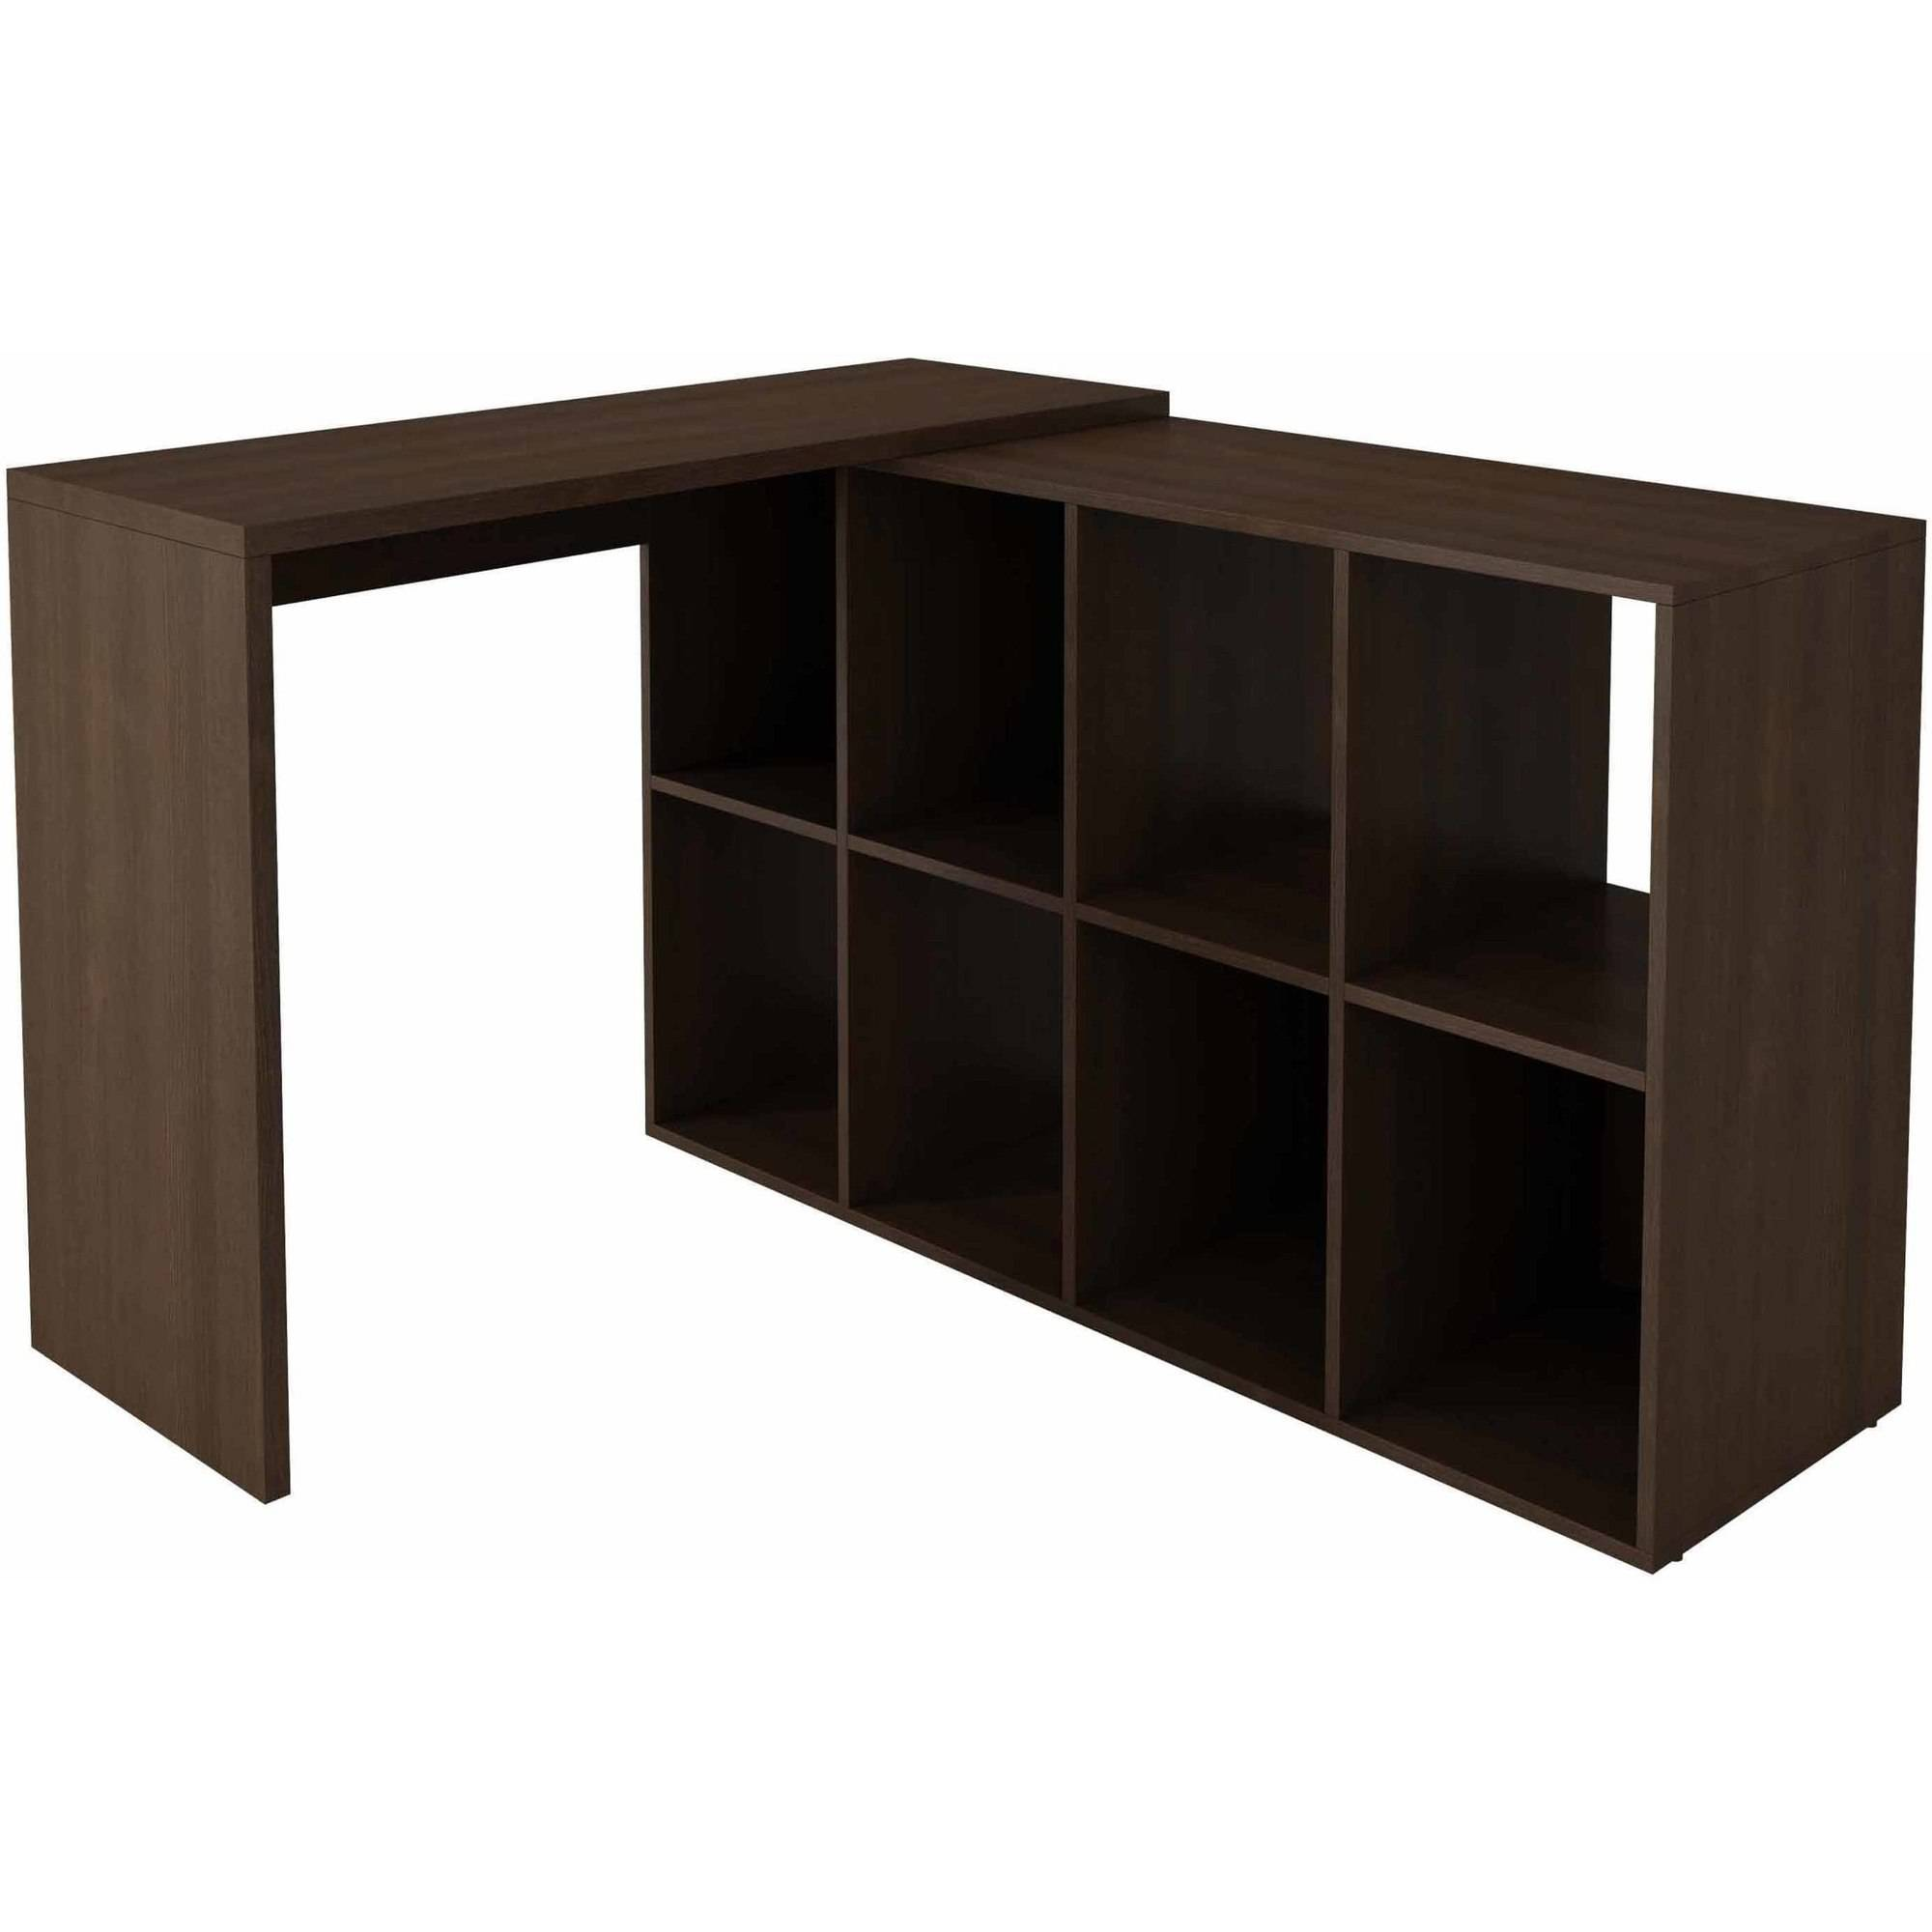 Image of Manhattan Comfort Accentuations Taranto Cubby Desk with 8 Shelves